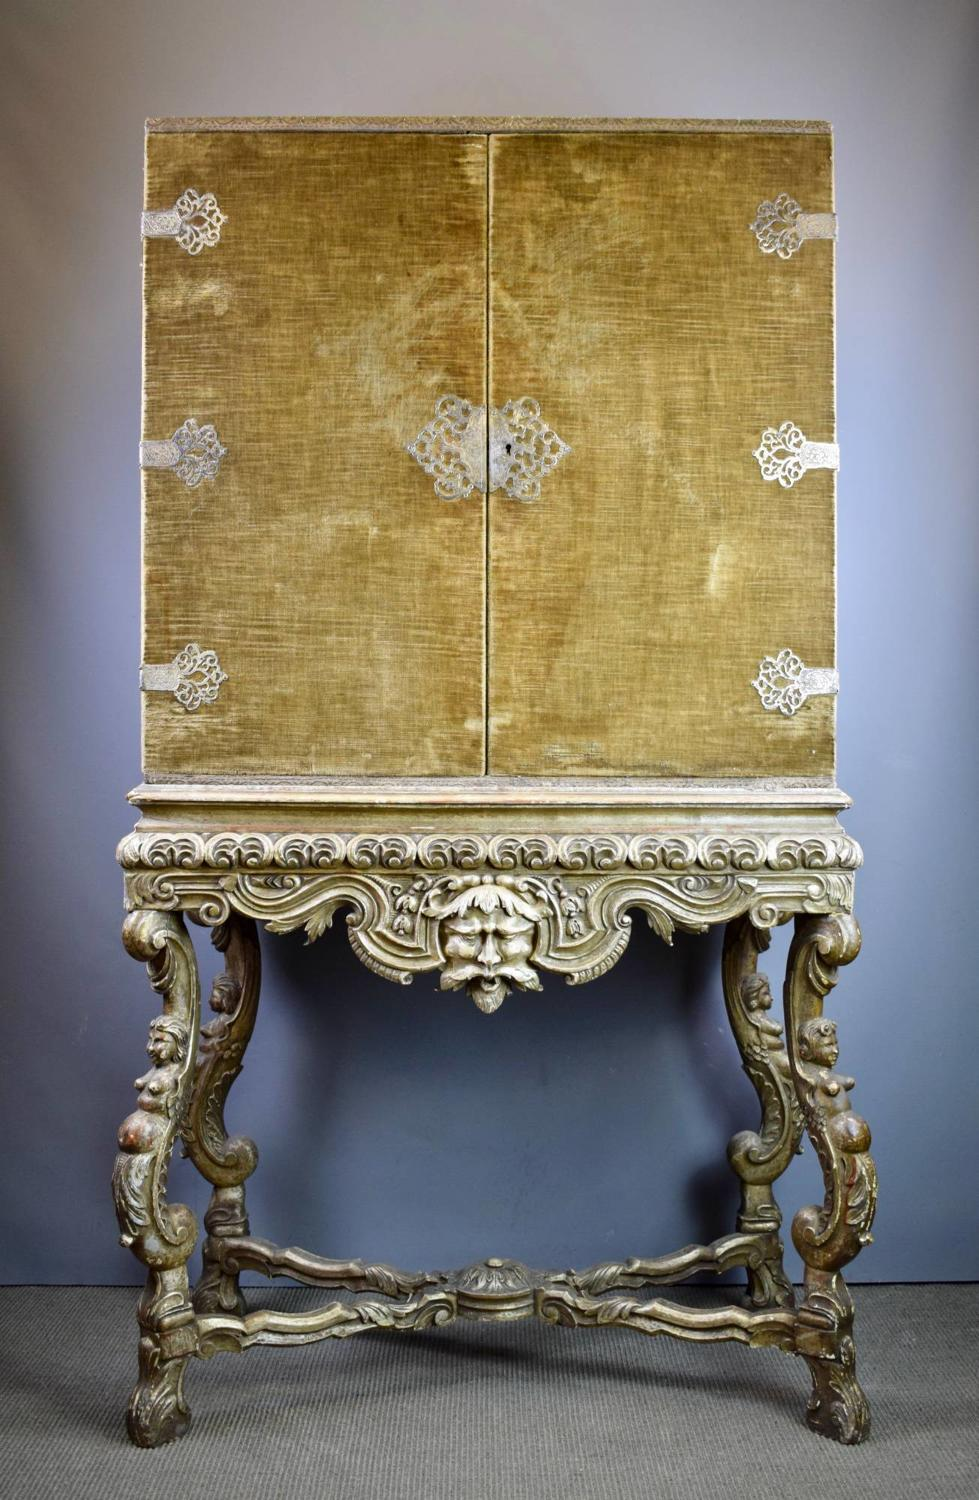 17th century Style Velvet Covered Cabinet on Carved Silver-wood Stand